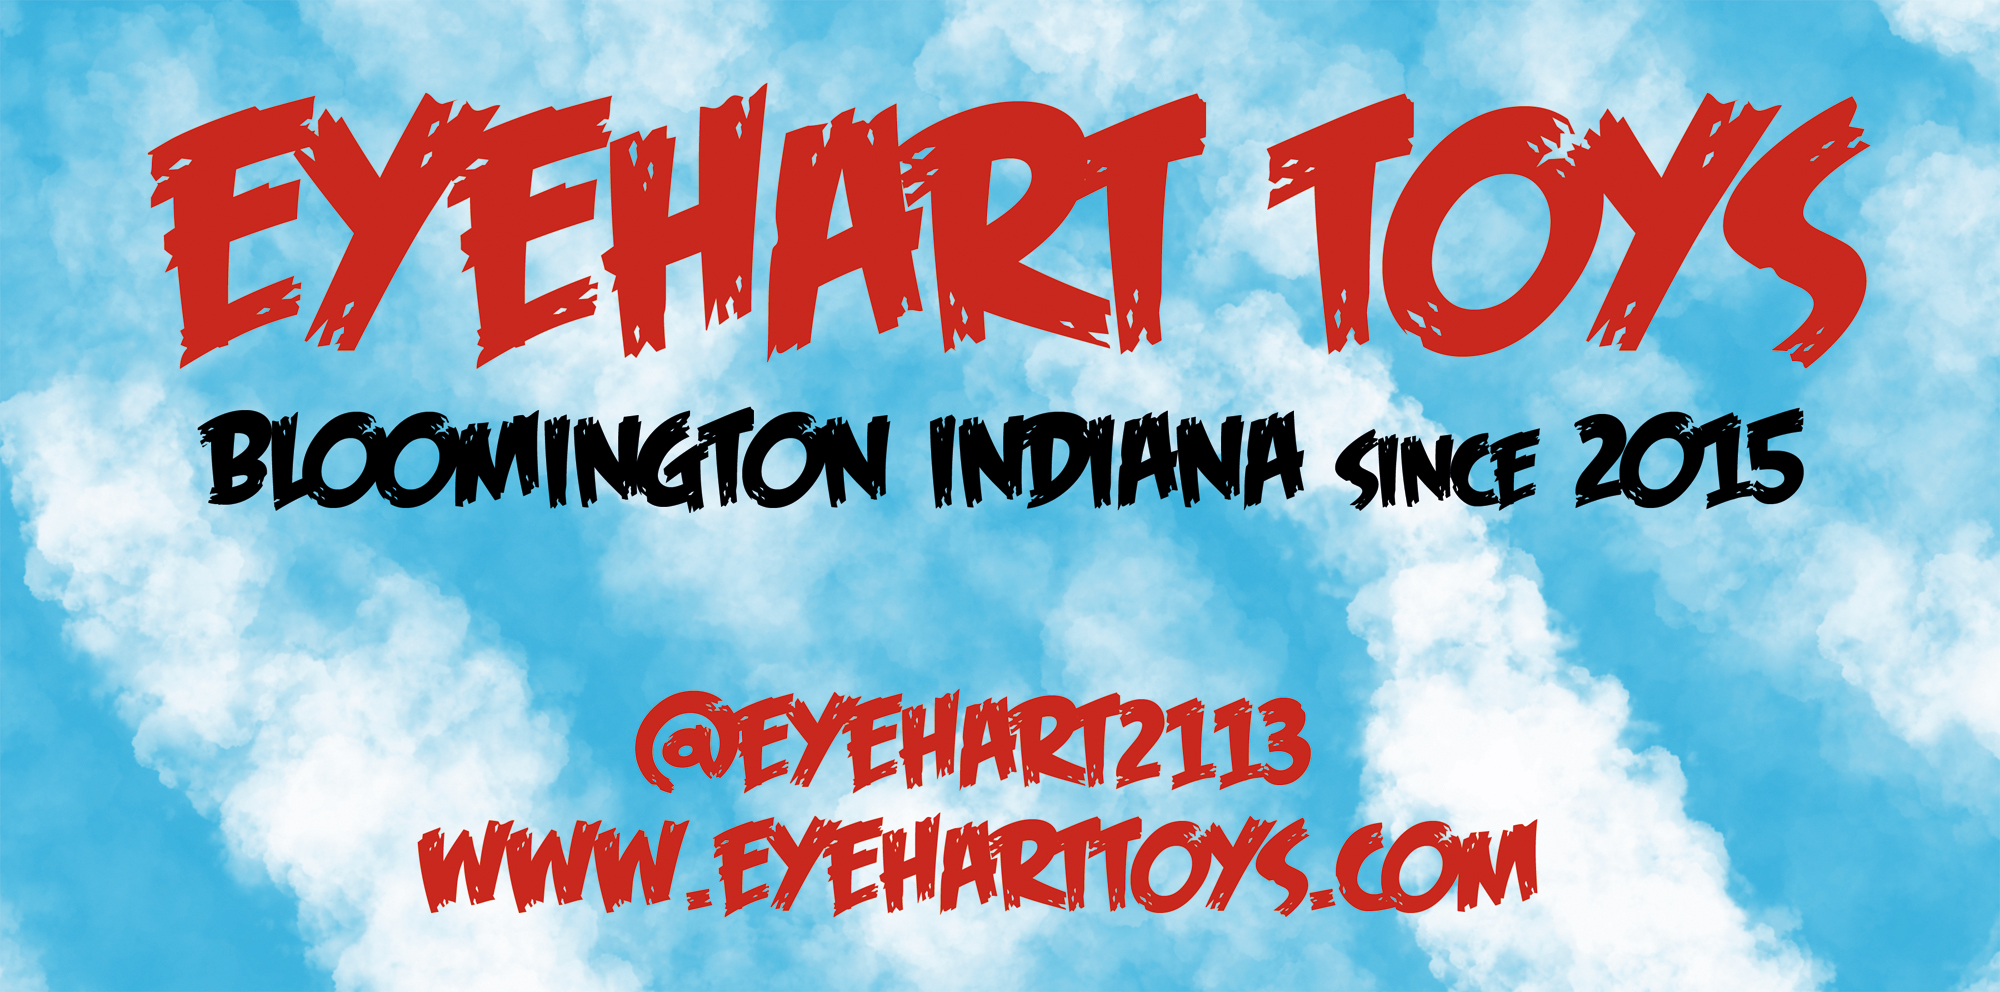 Eyehart Toys and Other Things